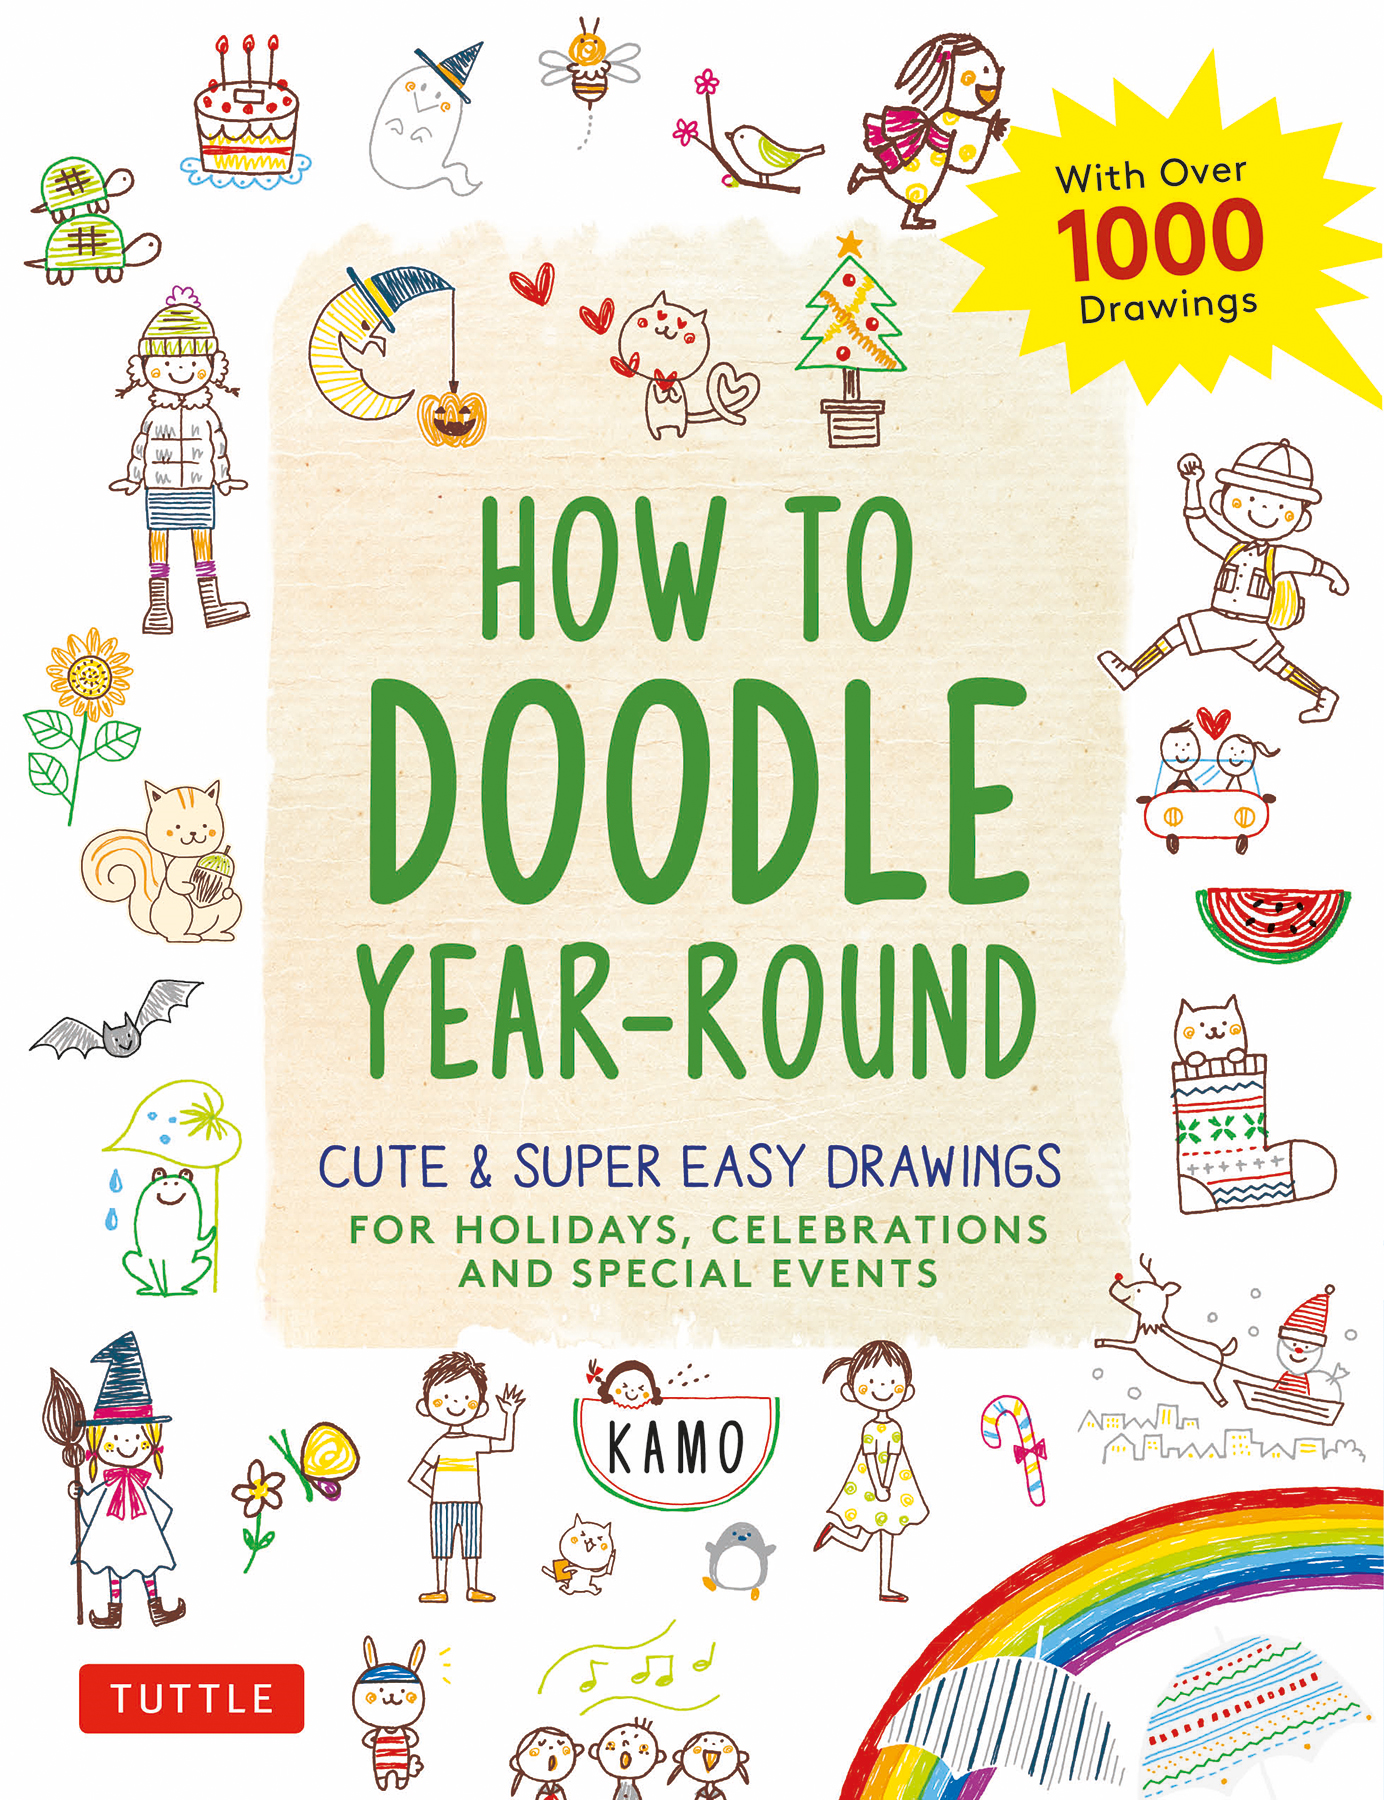 How to Doodle Year-Round